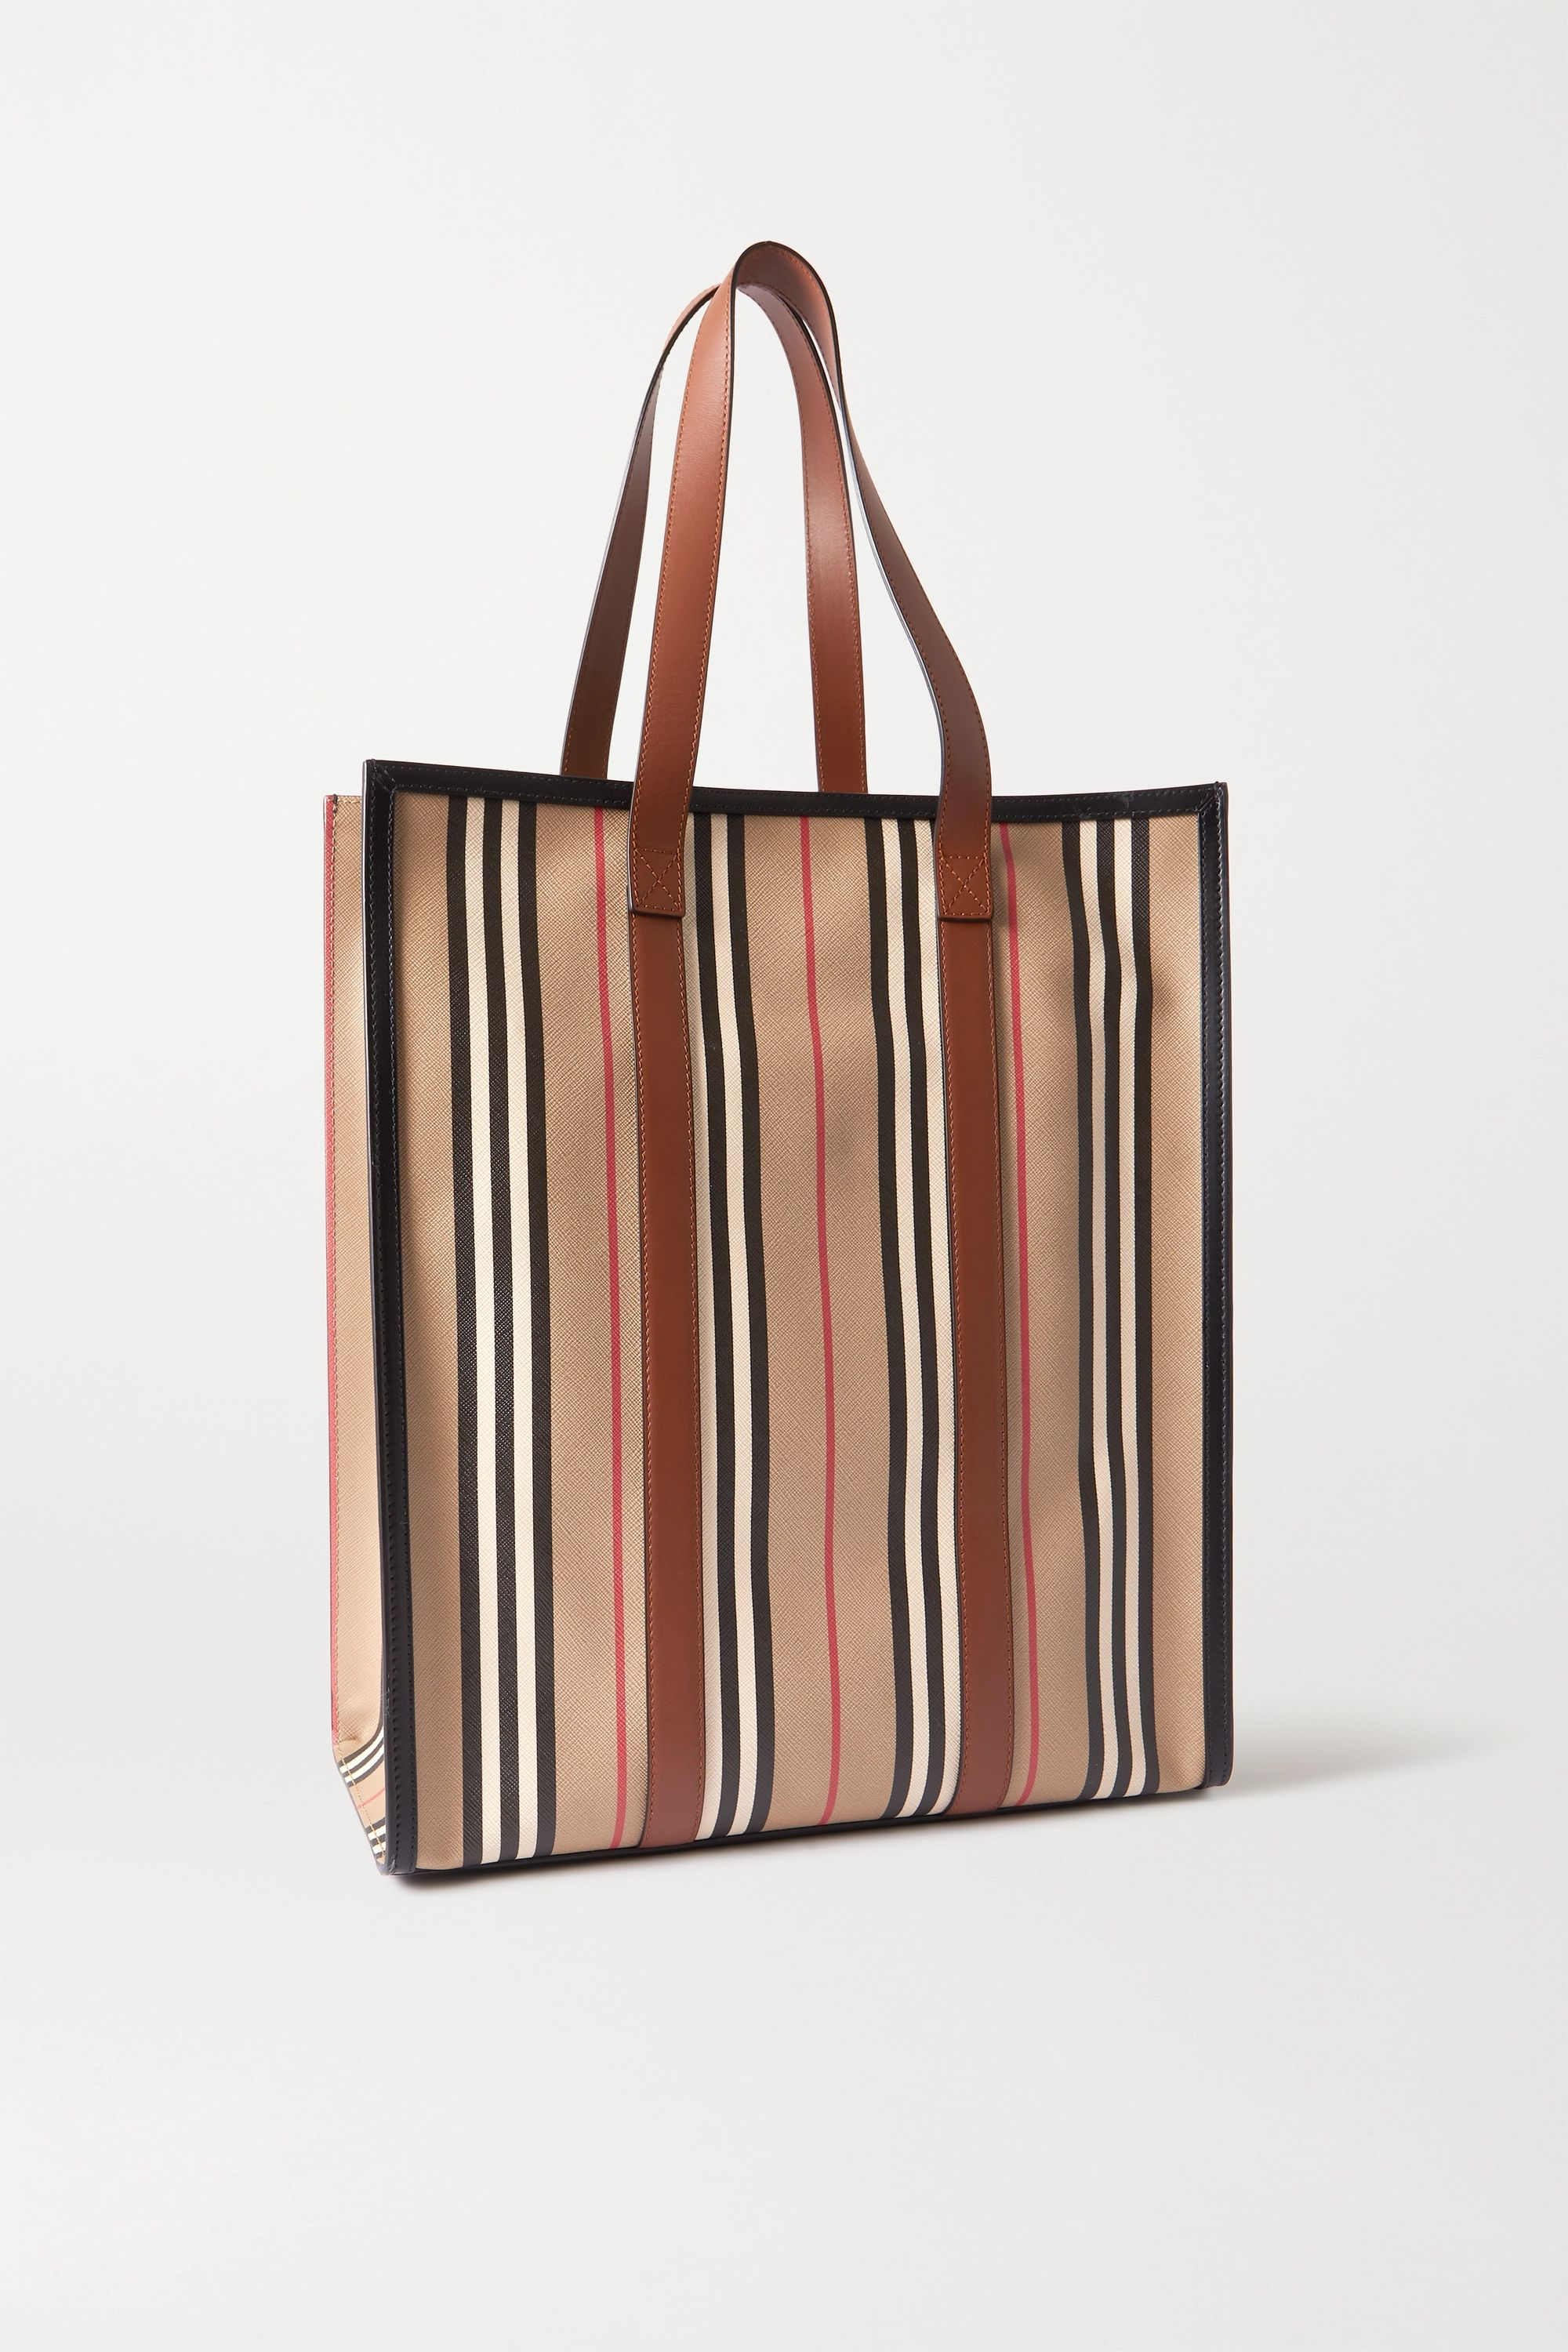 Burberry Leather-trimmed striped coated-canvas tote